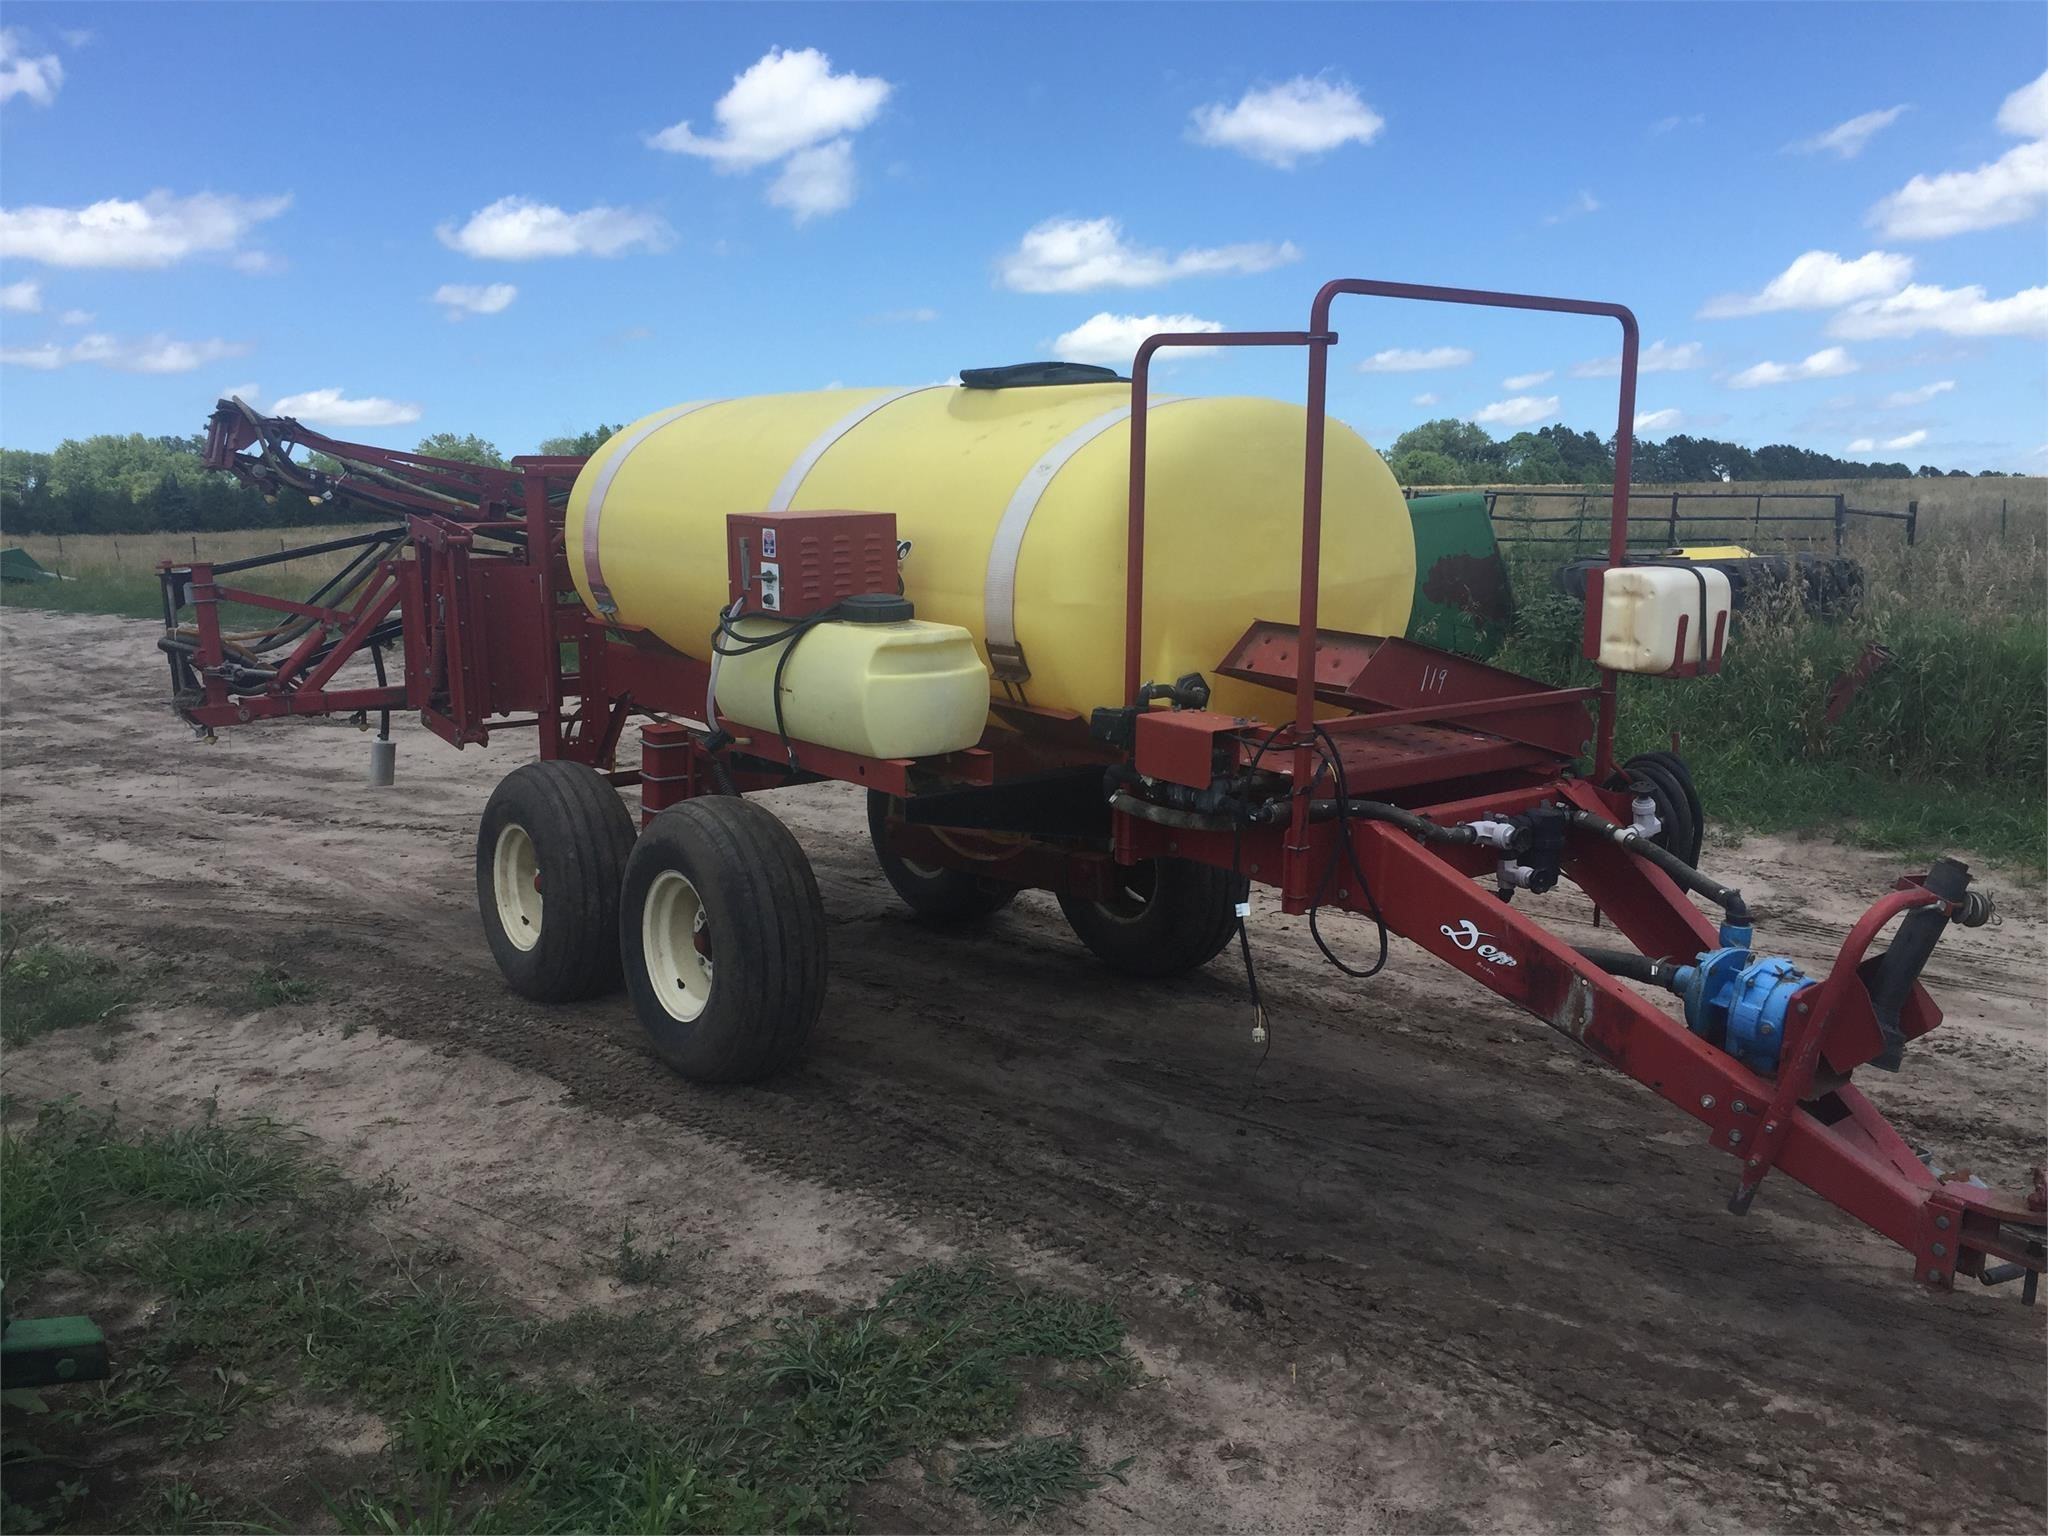 Demco HP500 Pull-Type Sprayer